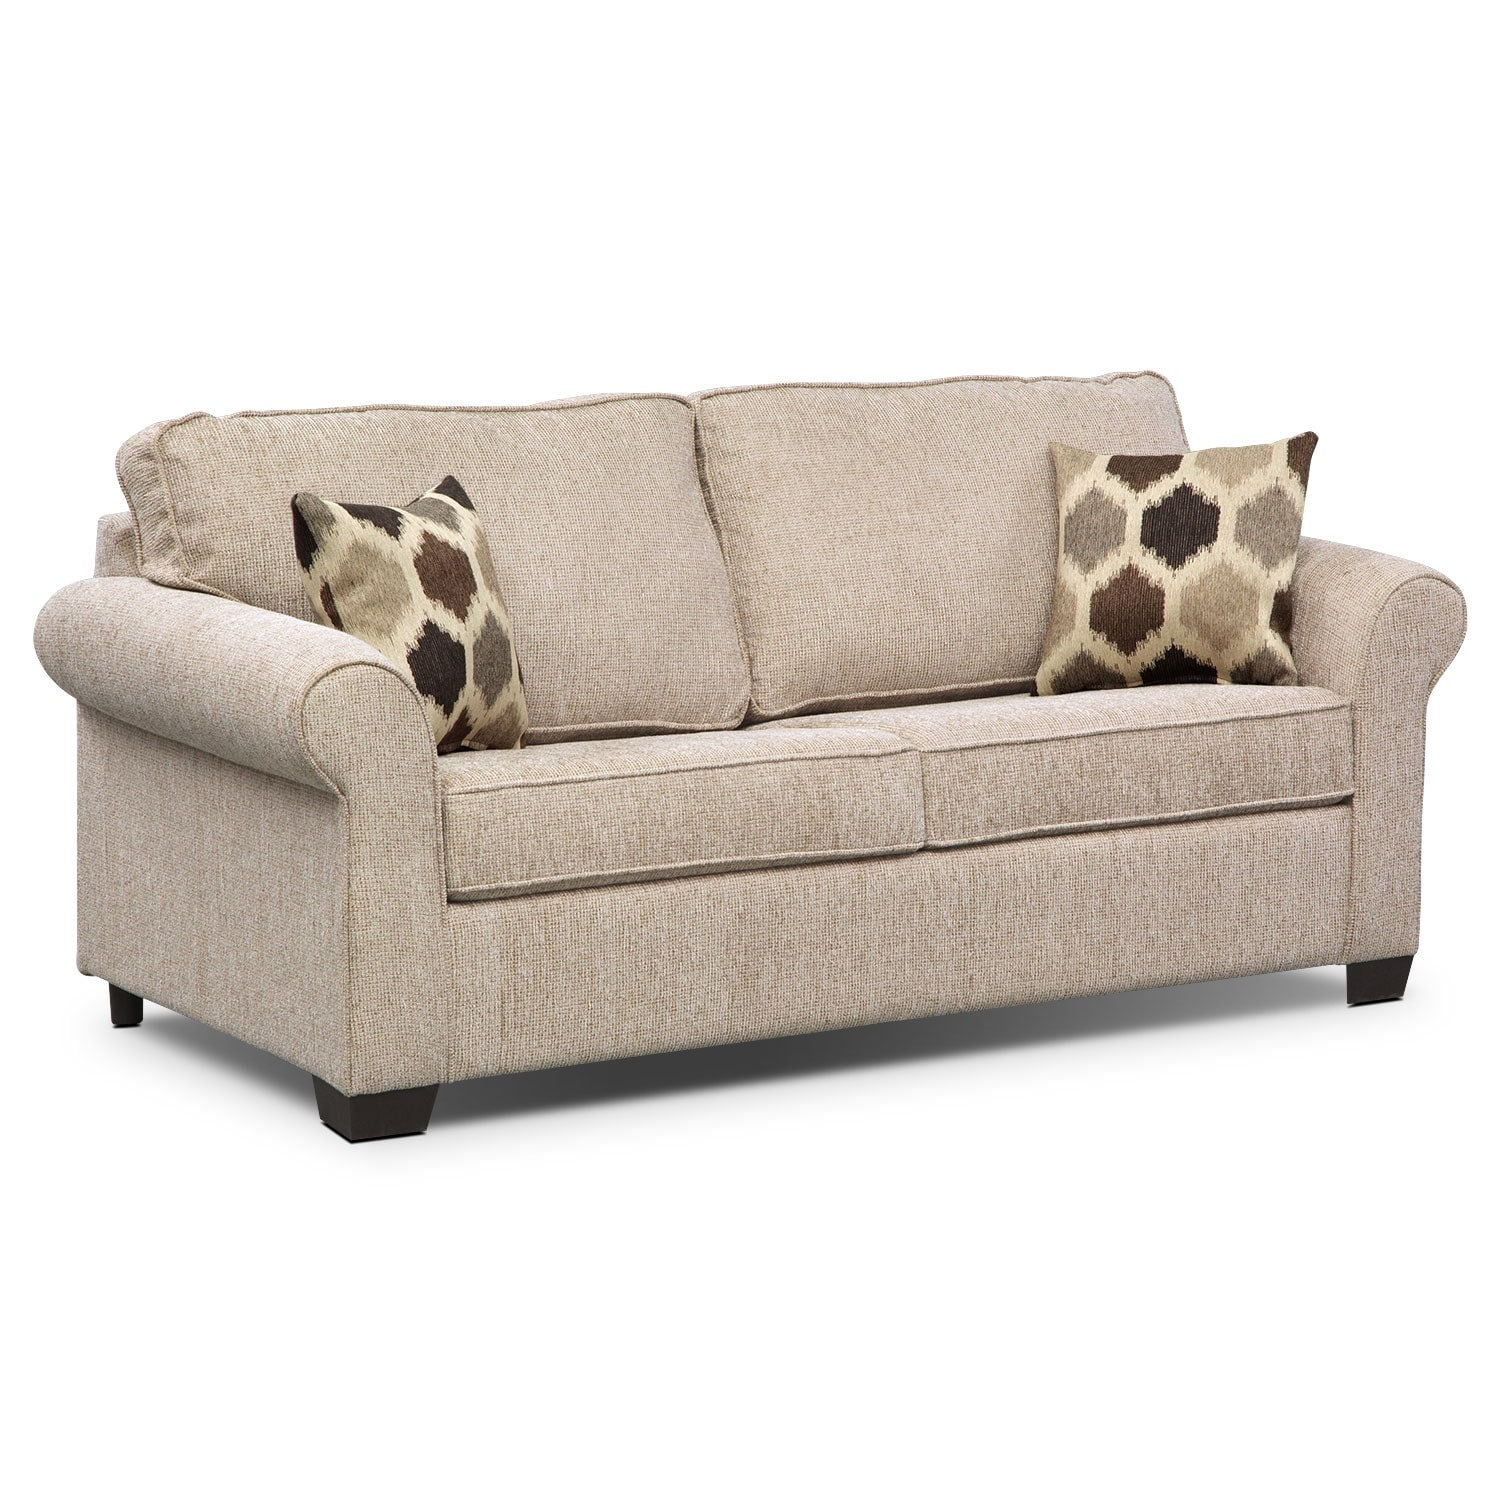 fletcher full innerspring sleeper sofa beige